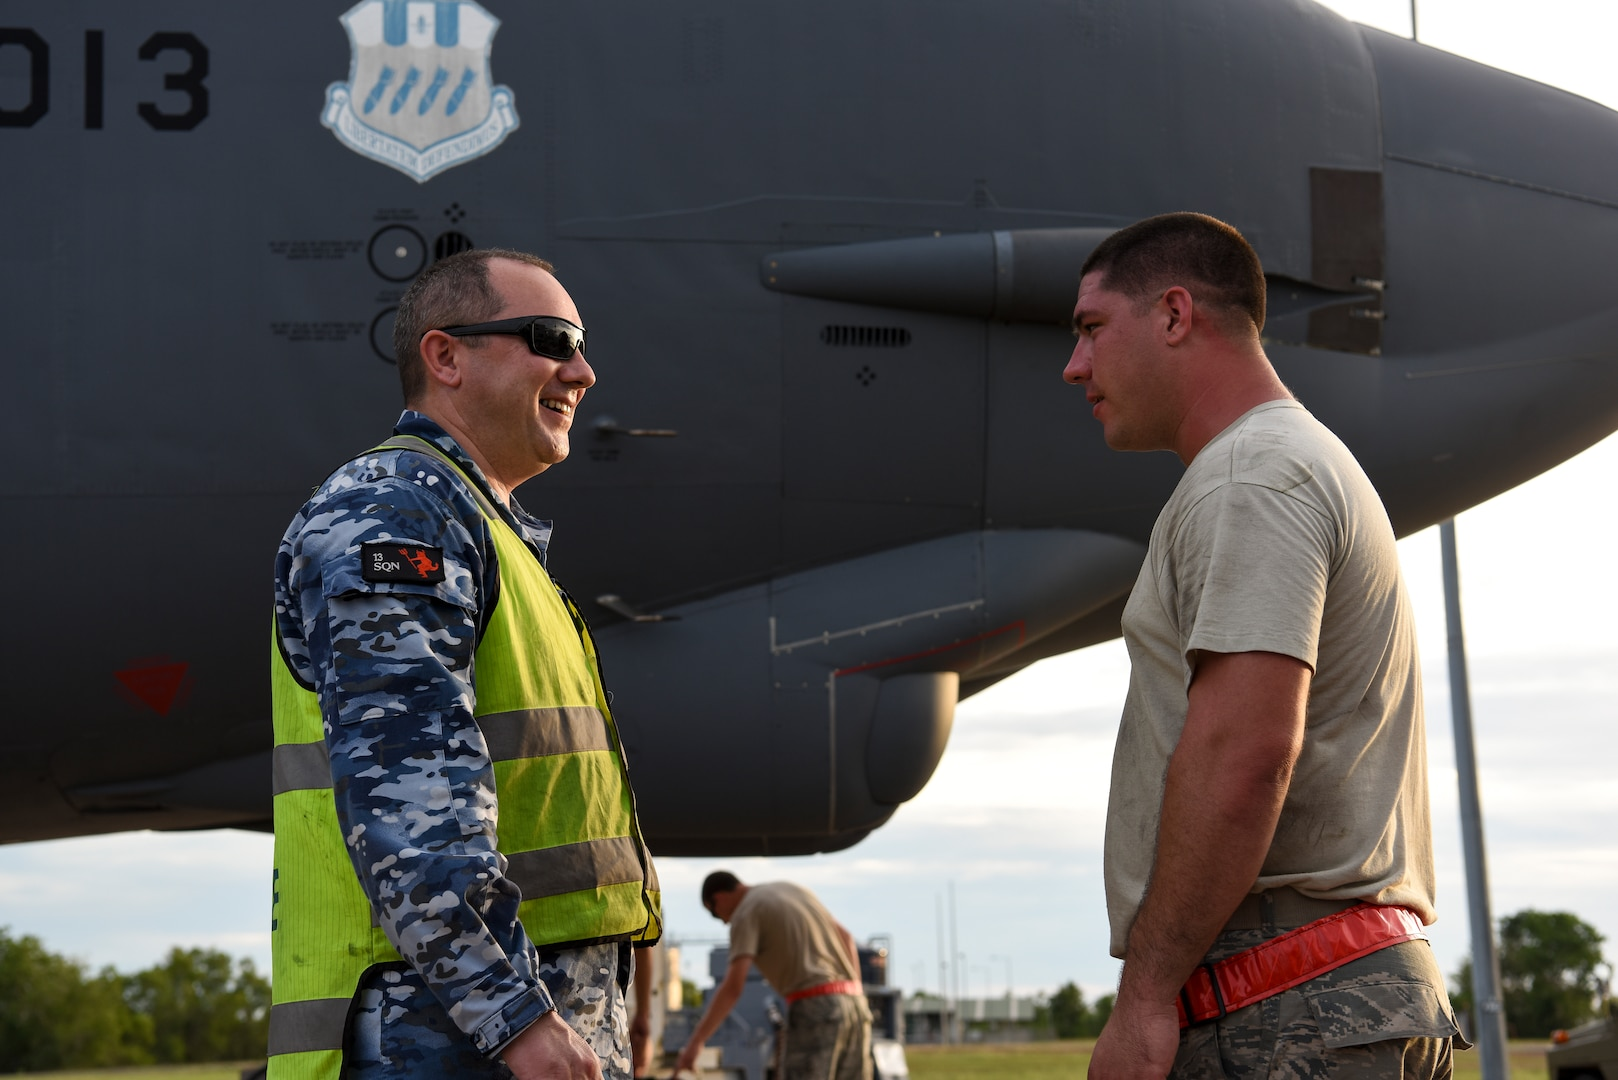 Royal Australian Air Force (RAAF) Leading Aircraftman Kevin Ewart, 13th Squadron aircraft refuler, and U.S. Air Force Staff. Sgt. Spencer Leger, 96th Expeditionary Aircraft Maintenance Unit crew chief, discuss refueling operations during exercise Lightning Focus at RAAF Base Darwin, Australia, Nov. 29, 2018.